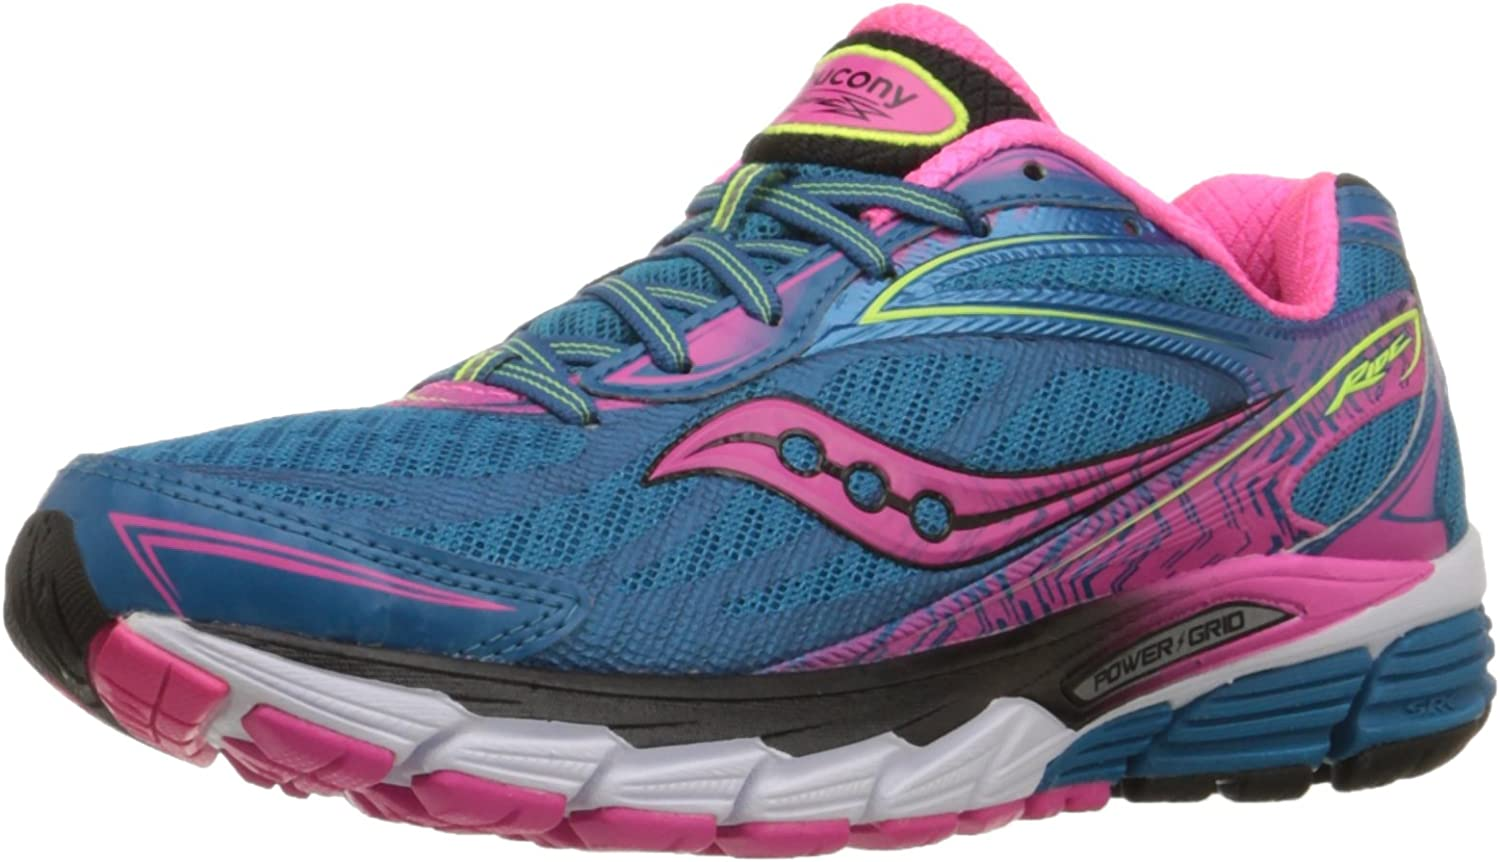 Saucony Women's Ride 8 Road Running shoes